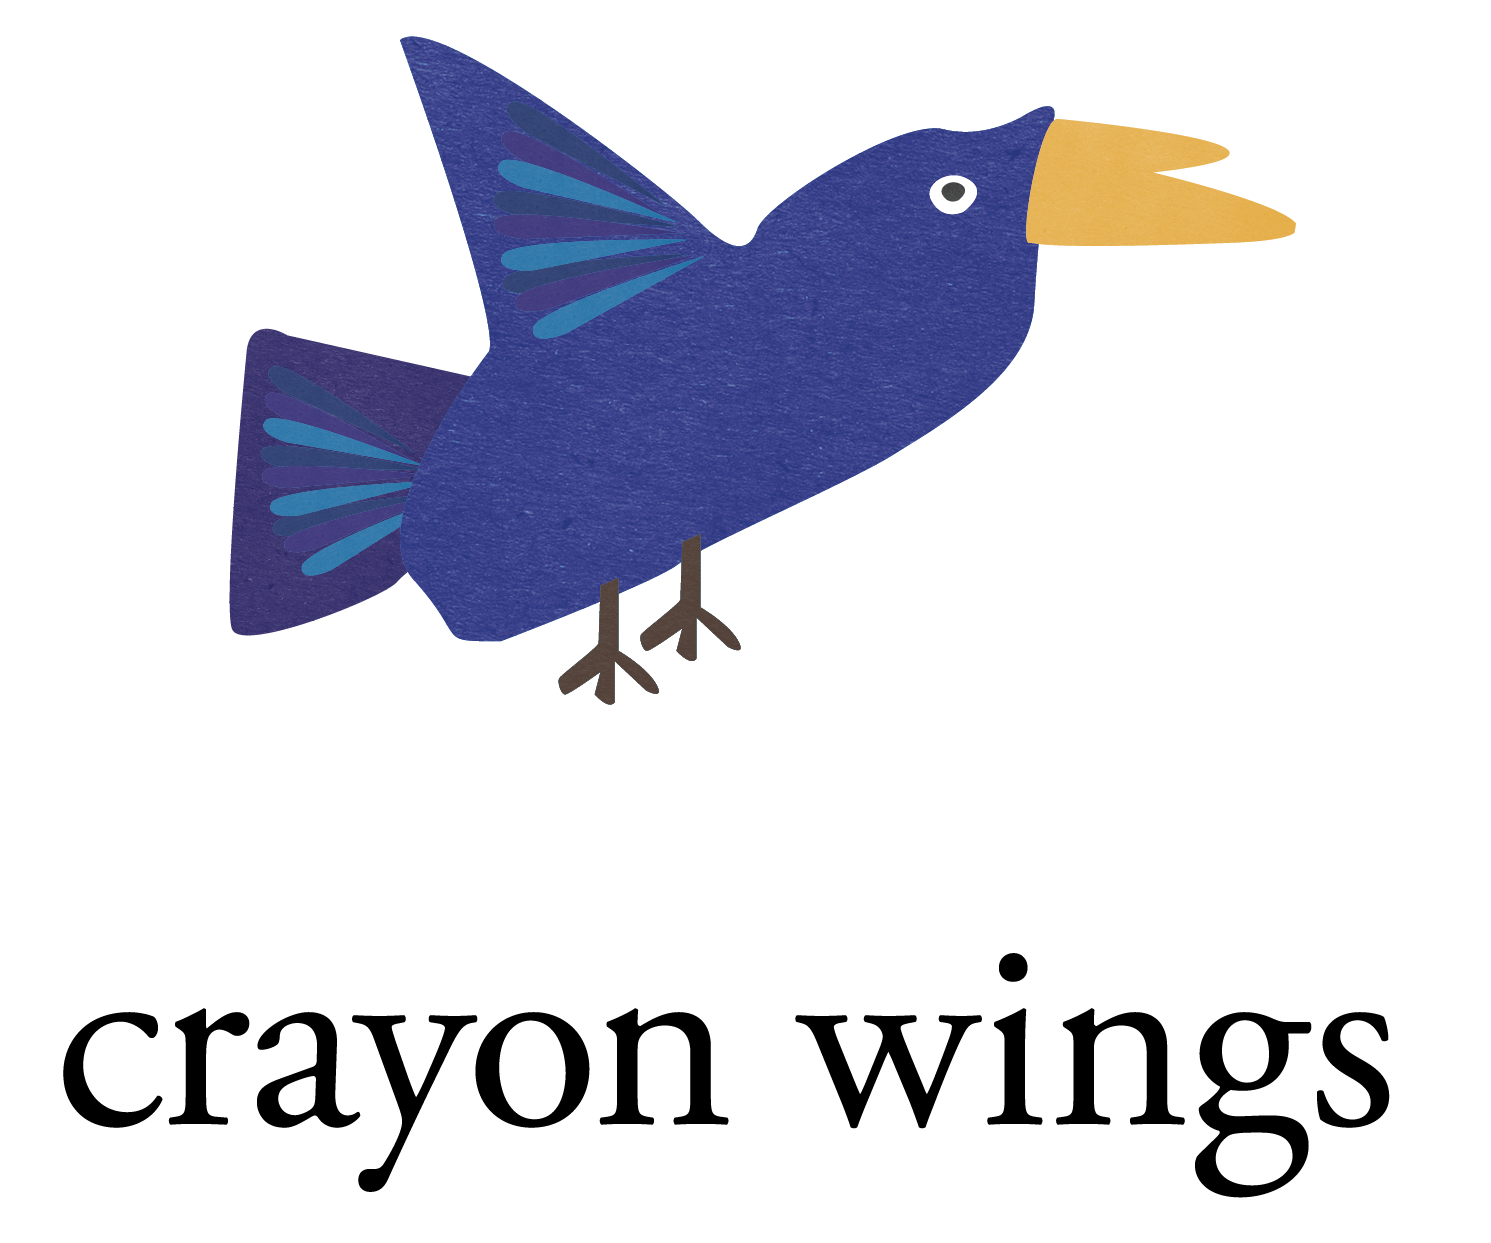 crayon wings